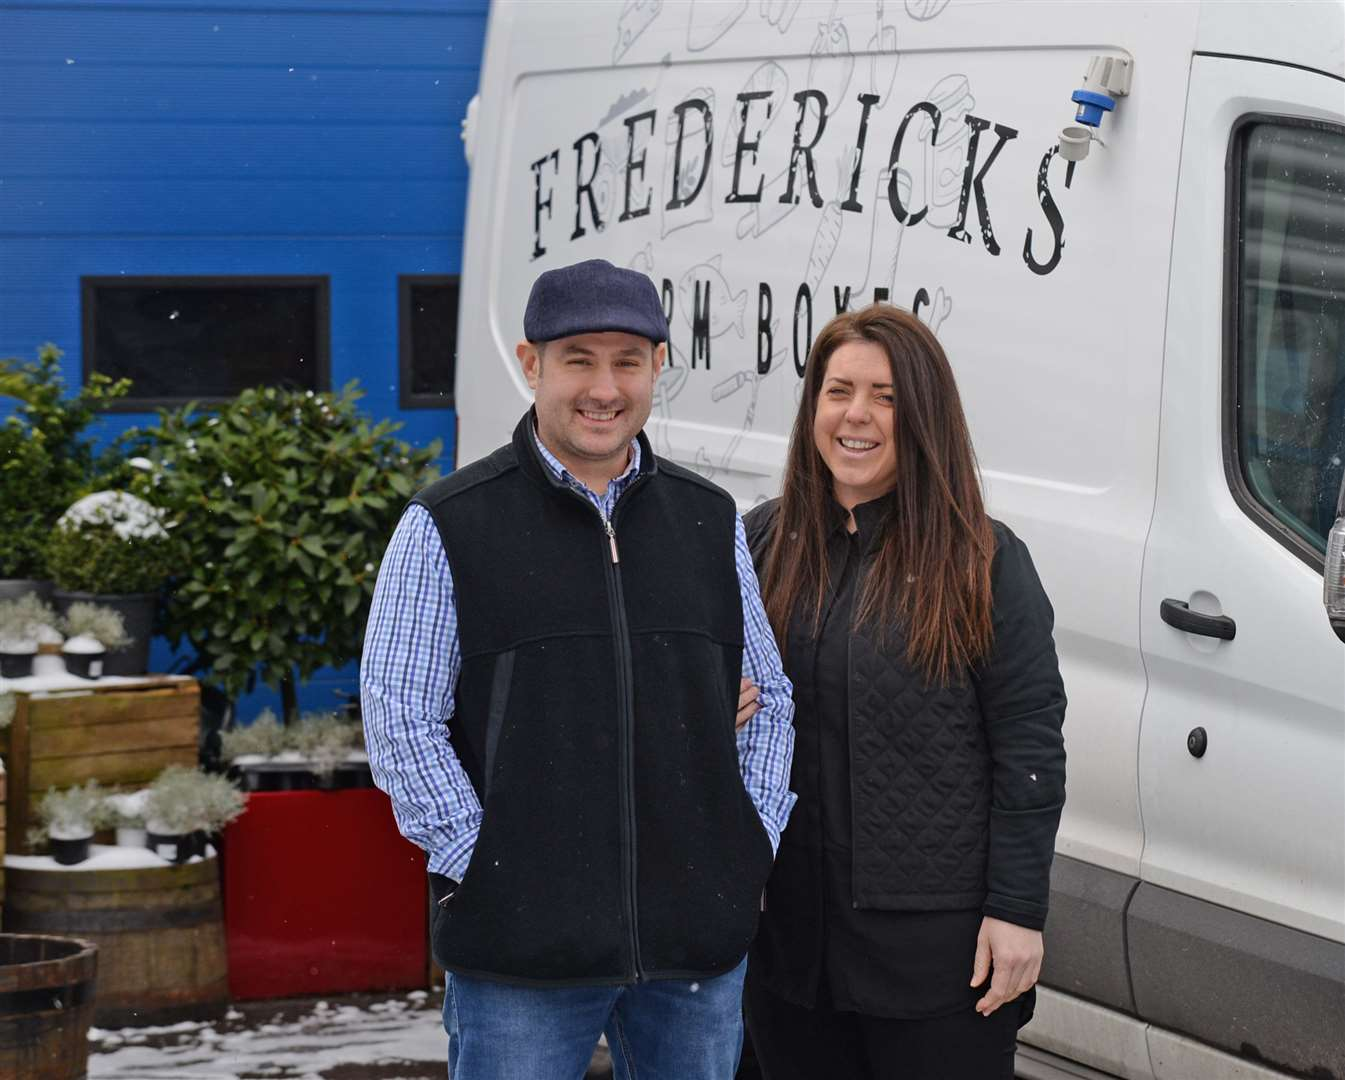 Frederick and Maria Hopkinson deliver their produce, homewares and gifts nationwide. Picture: Vikki Lince